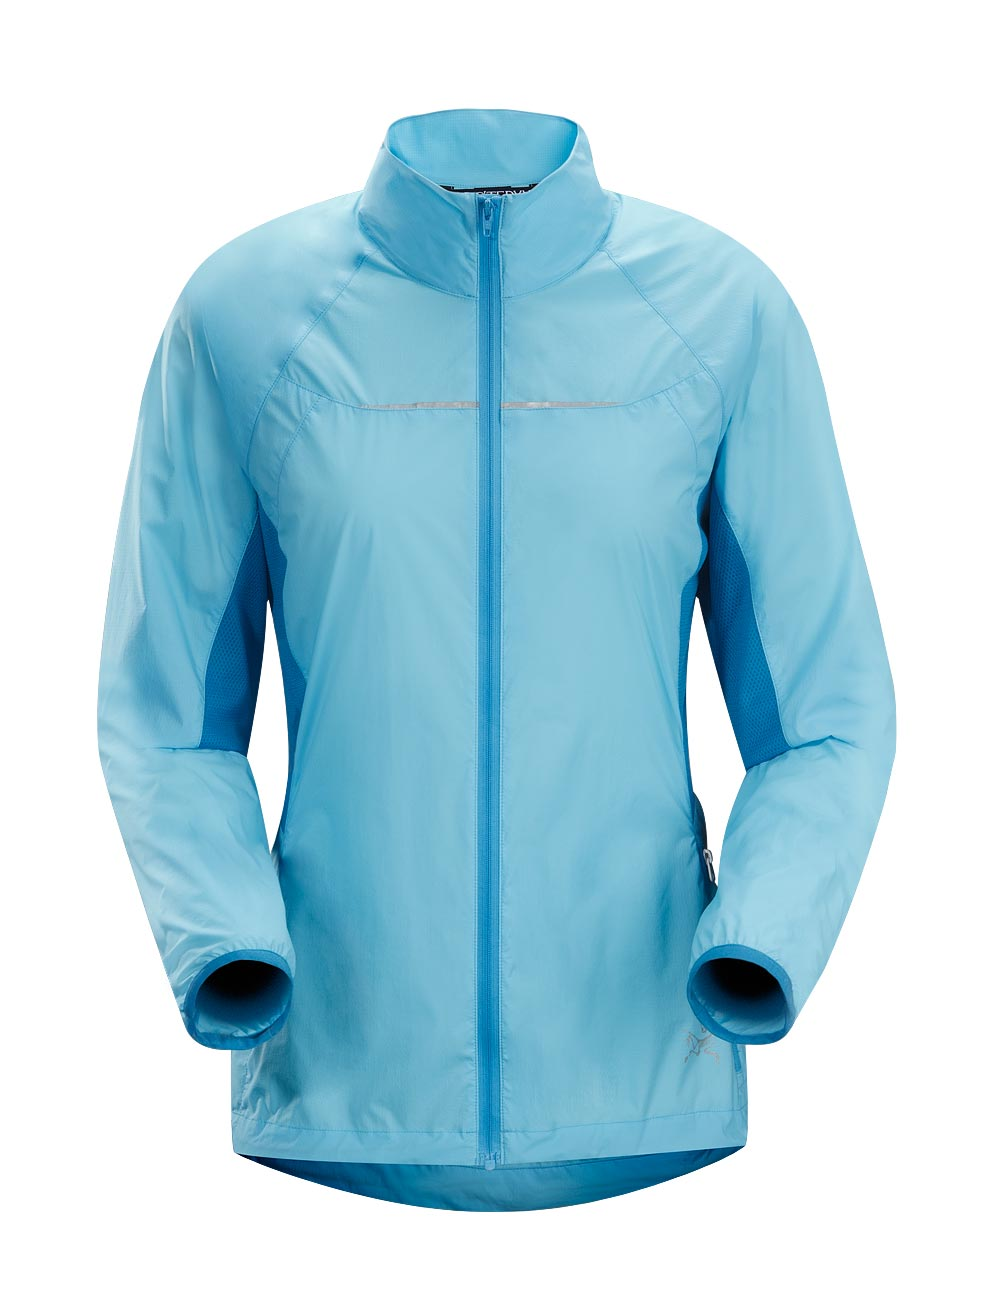 Arcteryx Jackets Women Sky Cita Jacket - New